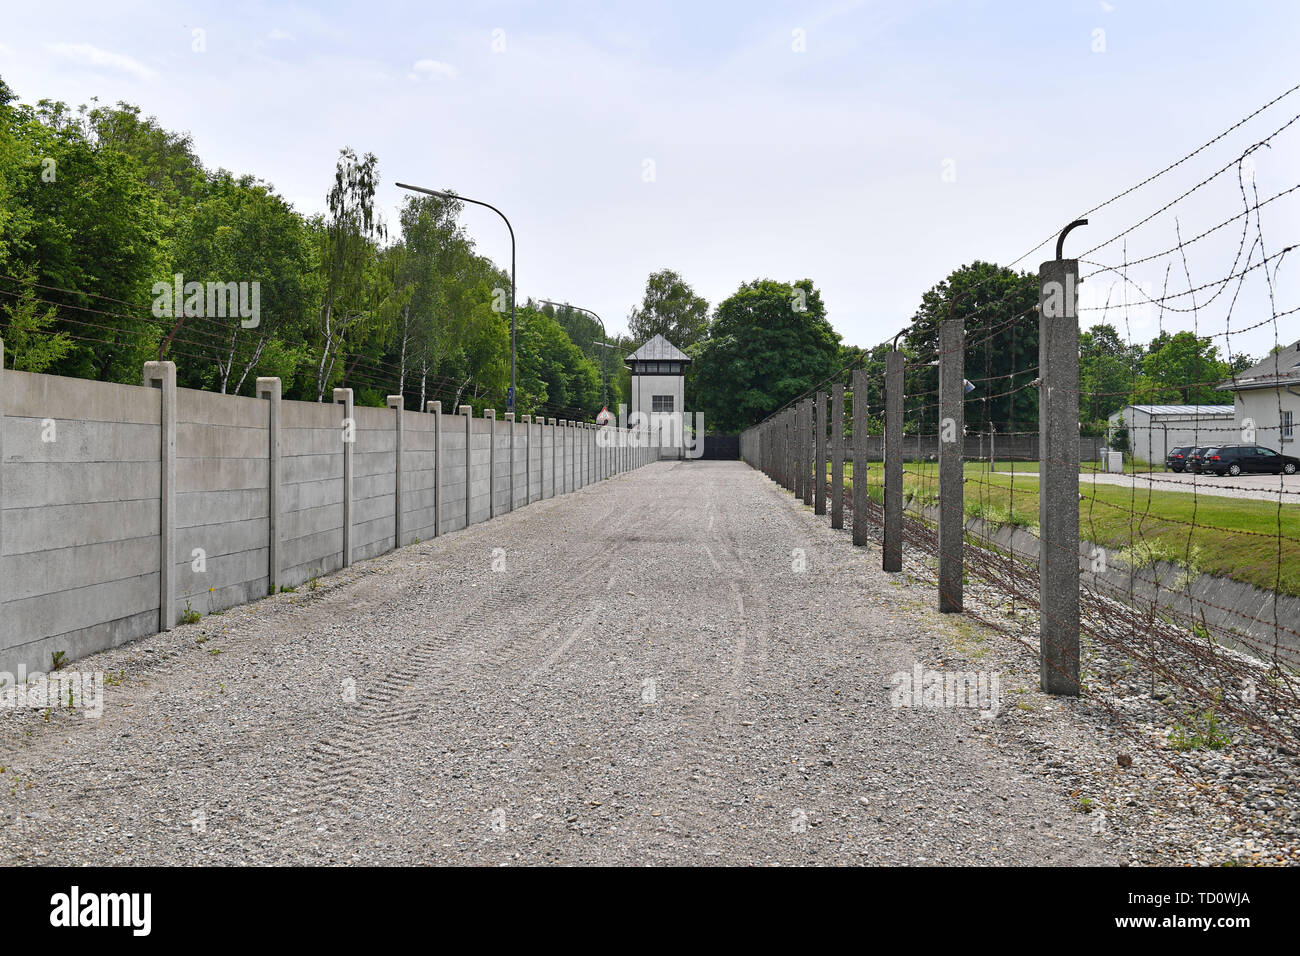 Dachau, Deutschland. 10th June, 2019. Watchtower, fence, wall in the memorial concentration camp Dachau- Gedenkstaette, 1933, 1945, 3, antisewithism, exterminate, extermination, Bavaria, Dachau, deportation, German, German history, Germany, third, Europe, fascism, fascists, fascist, commemoration, Memorial site, history, Jew, concentration camp, concentration camp, memorial, Nazism, Nazi, Nazi, Nazi, Reich, crime, past, extermination, extermination camp | usage worldwide Credit: dpa/Alamy Live News - Stock Image